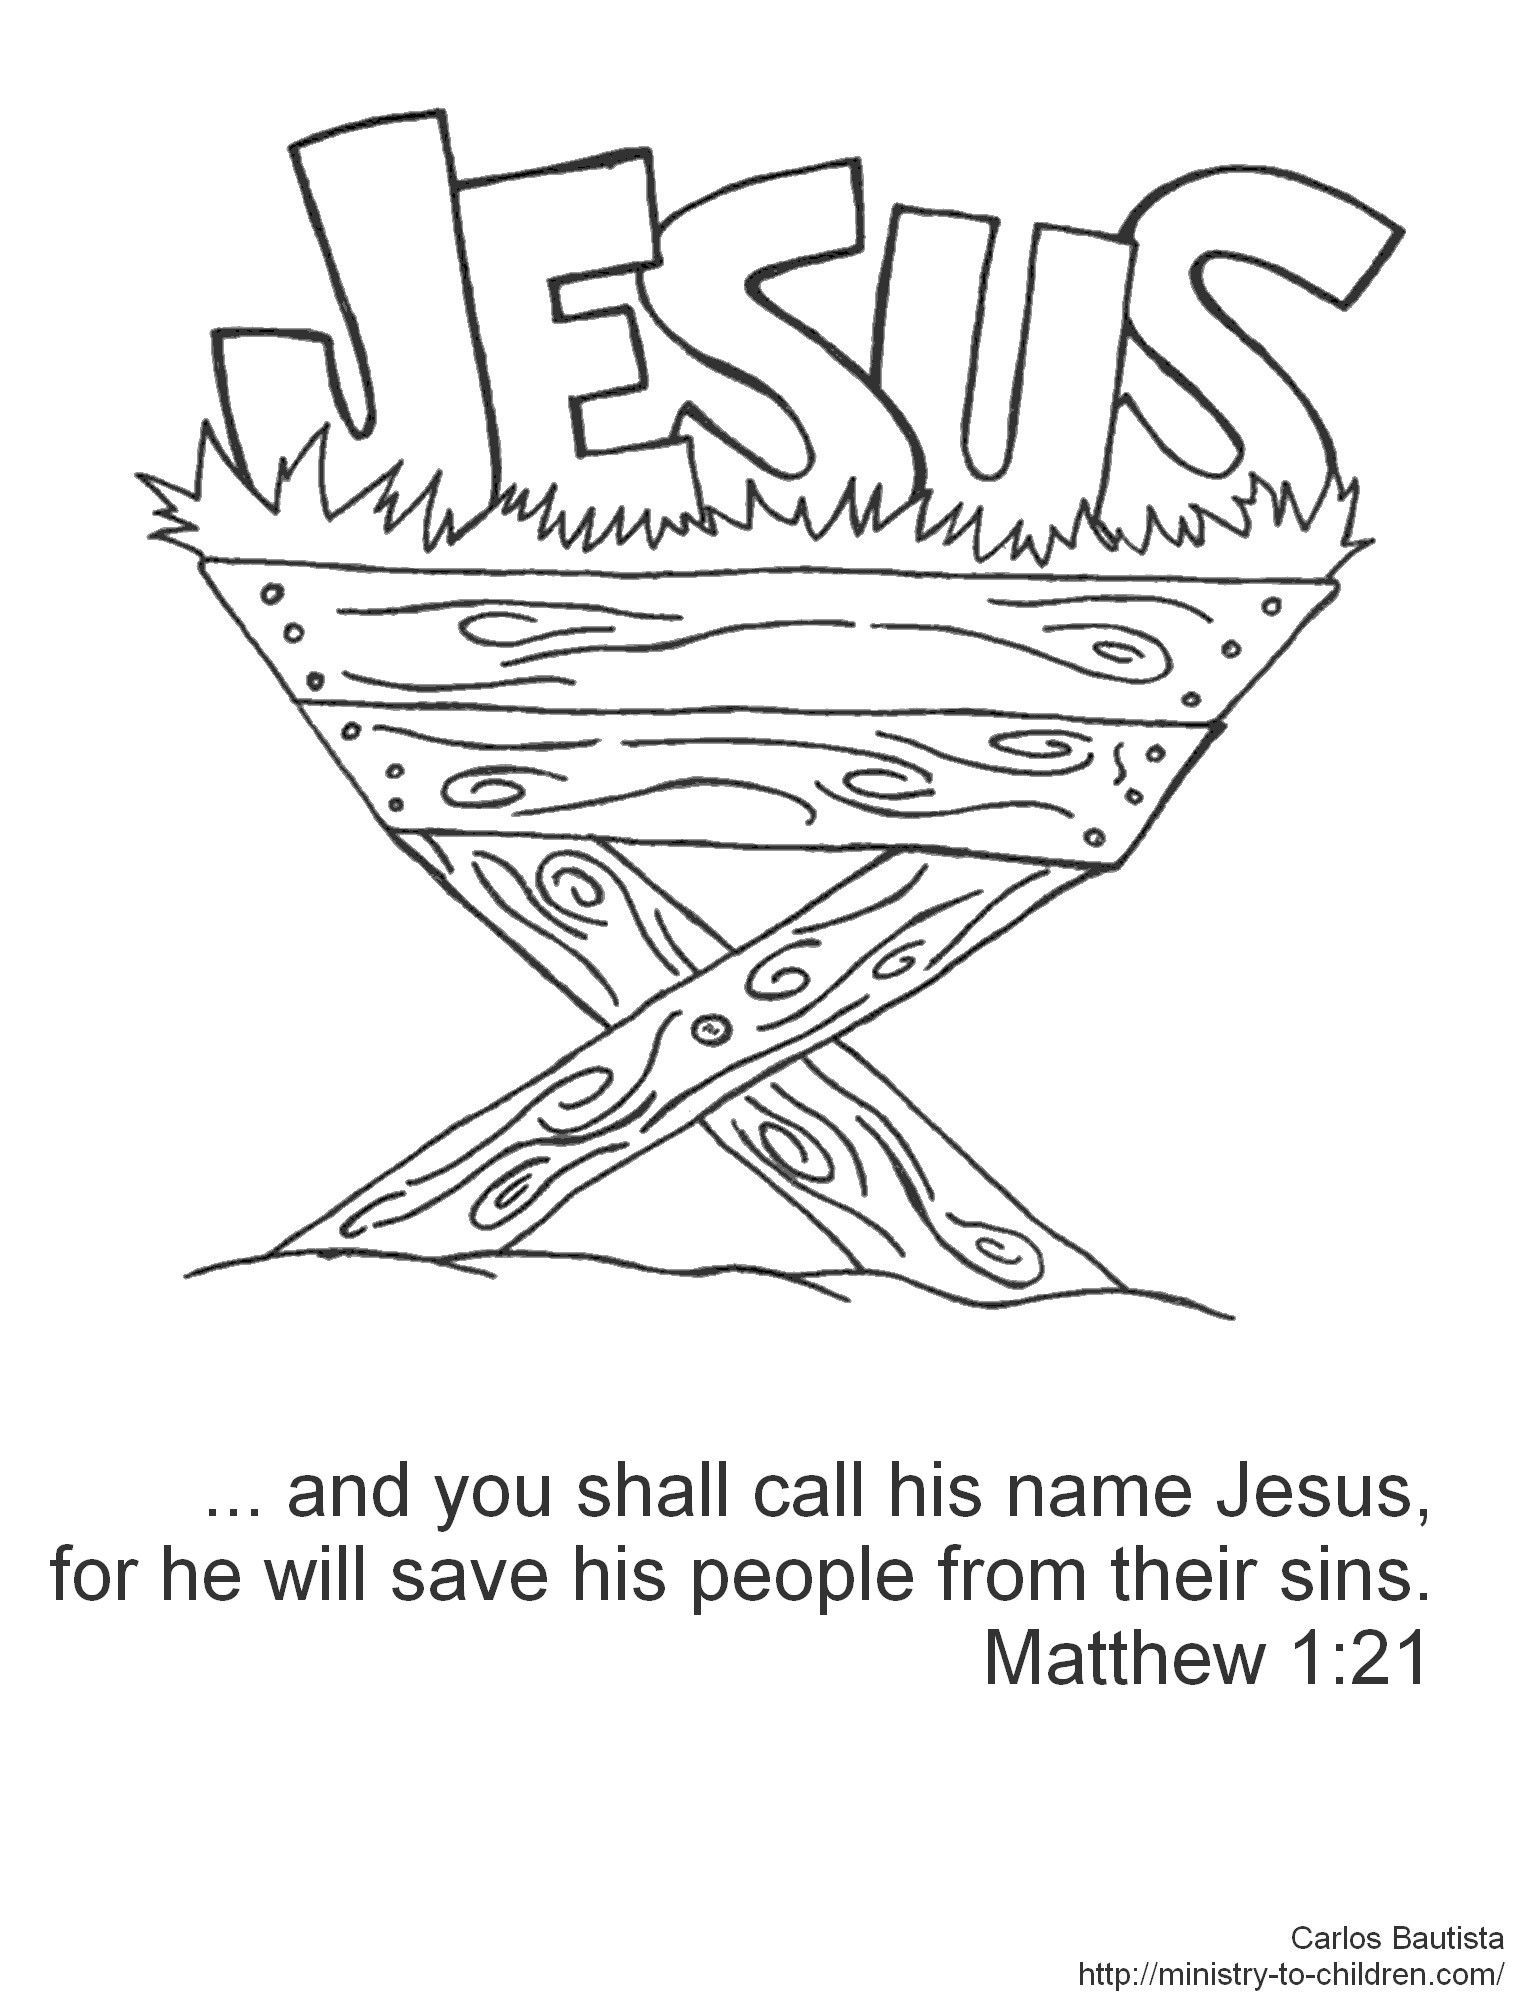 Christmas Scripture Coloring Pages Yahoo Image Search Results Bible Verse Coloring Page Jesus Coloring Pages Bible Verse Coloring